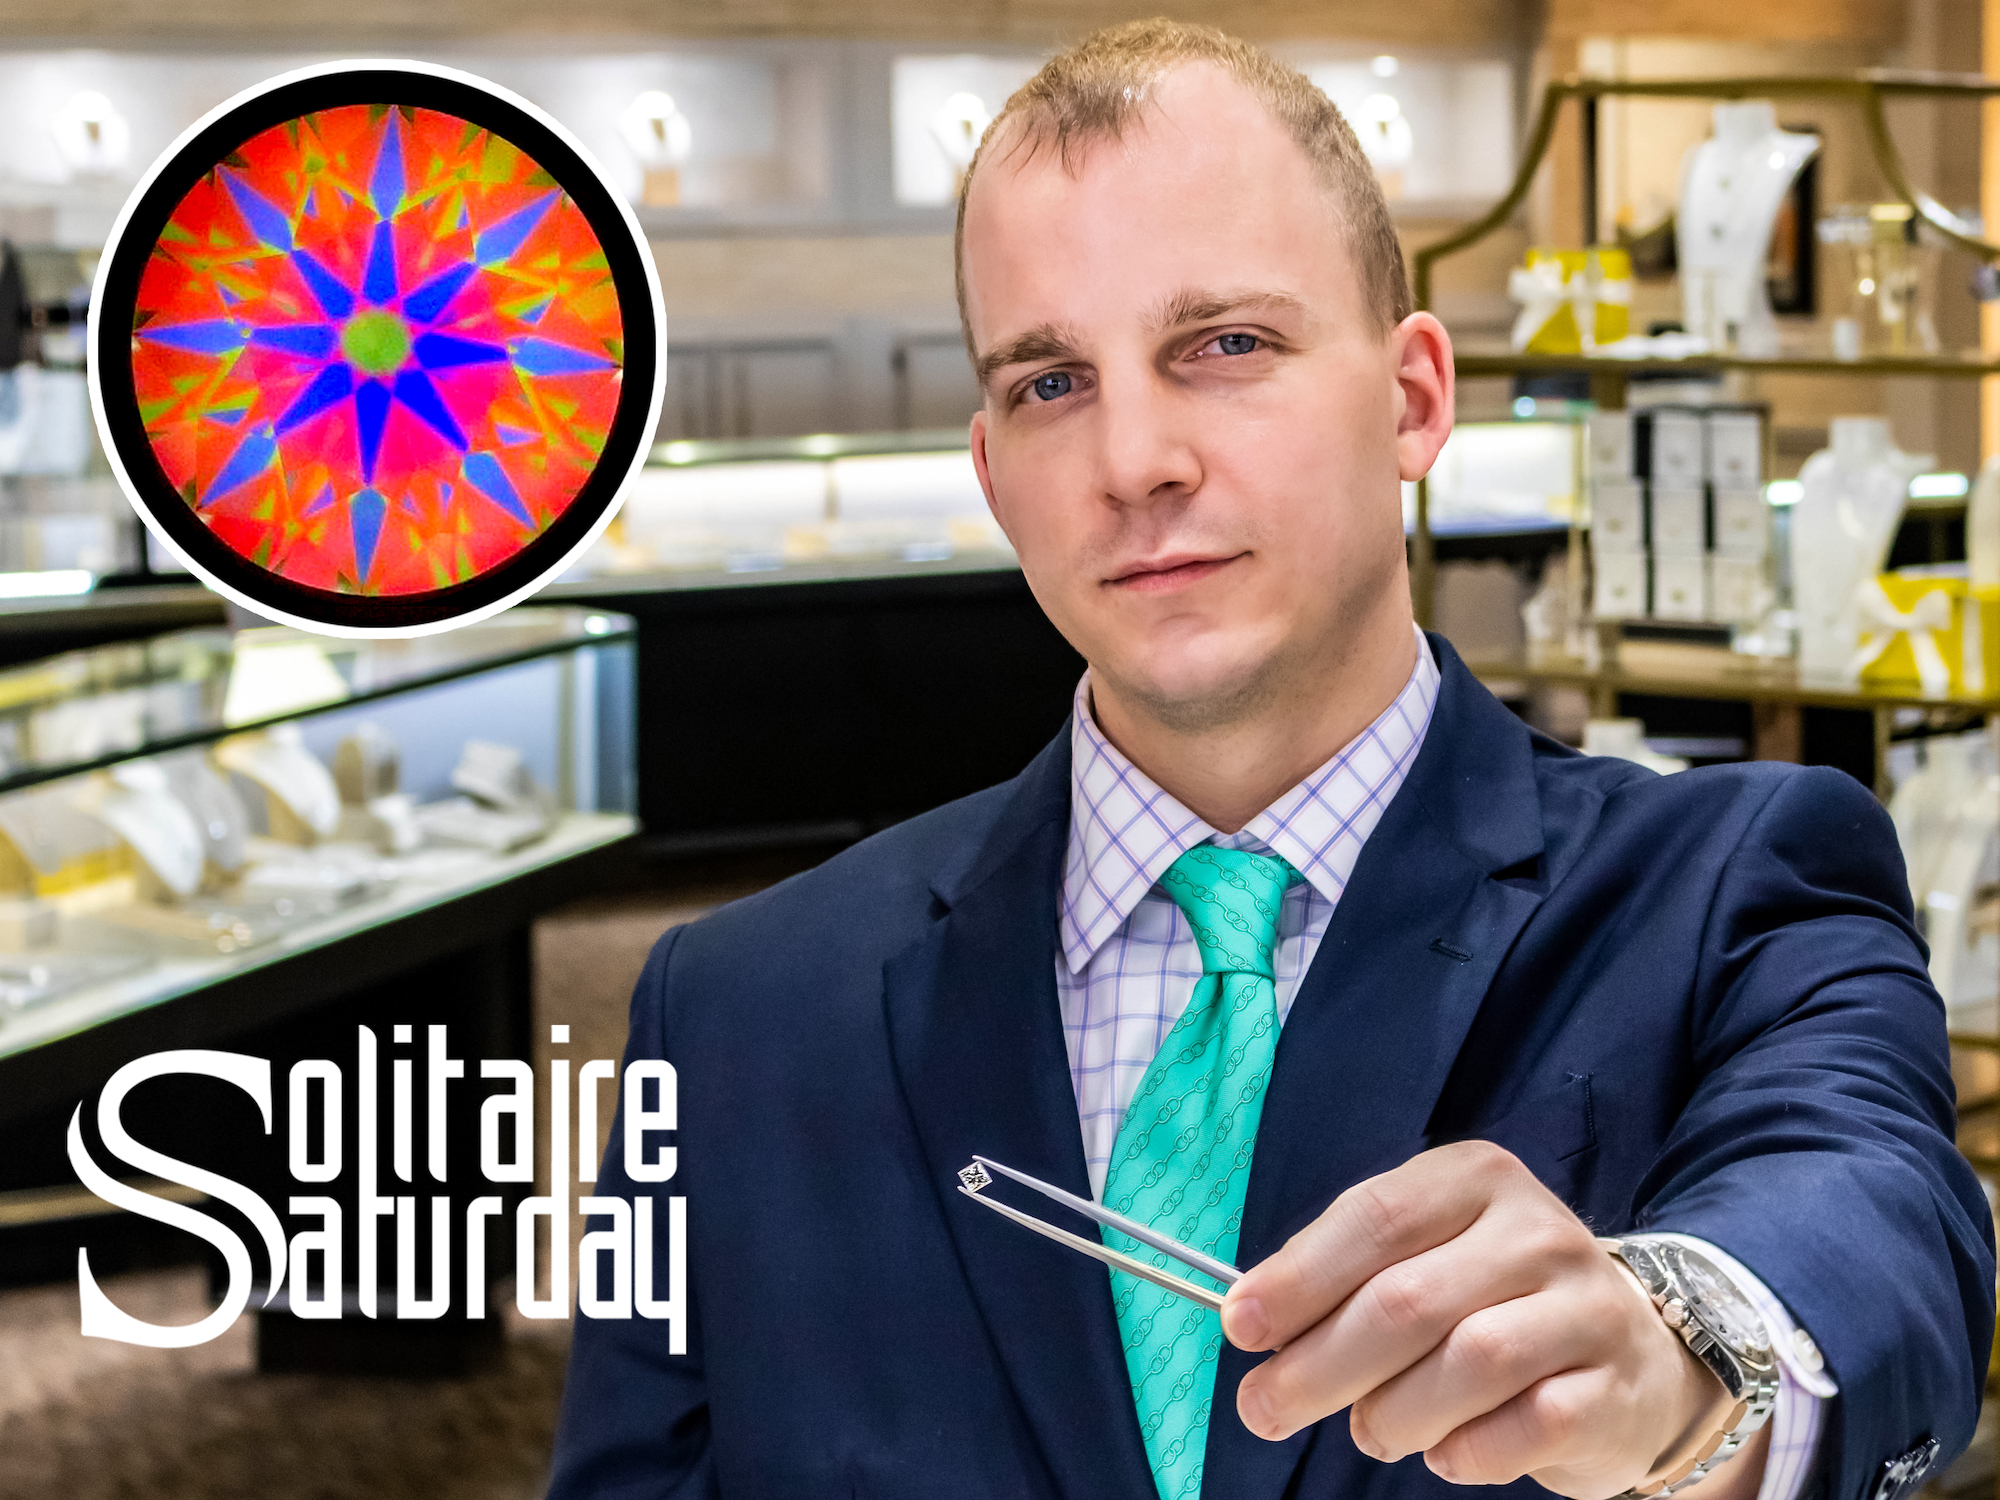 young man in a blue sport coat and teal tie holding a diamond with a pair of tweezers and looking directly into the camera. Image has the words Solitaire Saturday set on top with a heatmap image of a diamond.